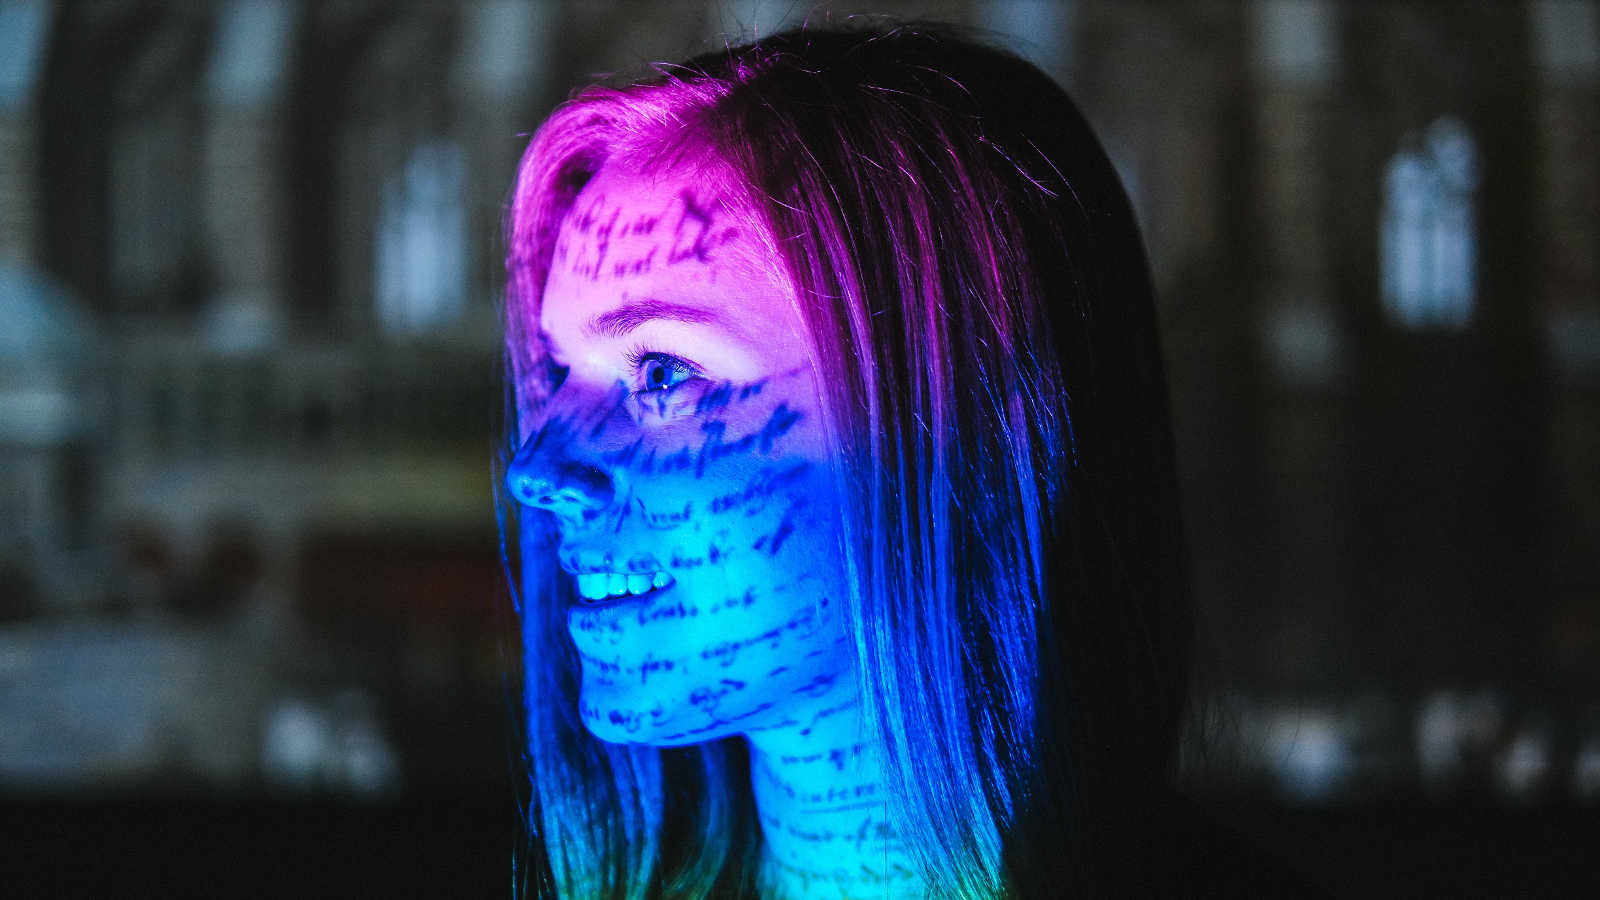 A young woman looks at a projected, colorful image of caligraphy.